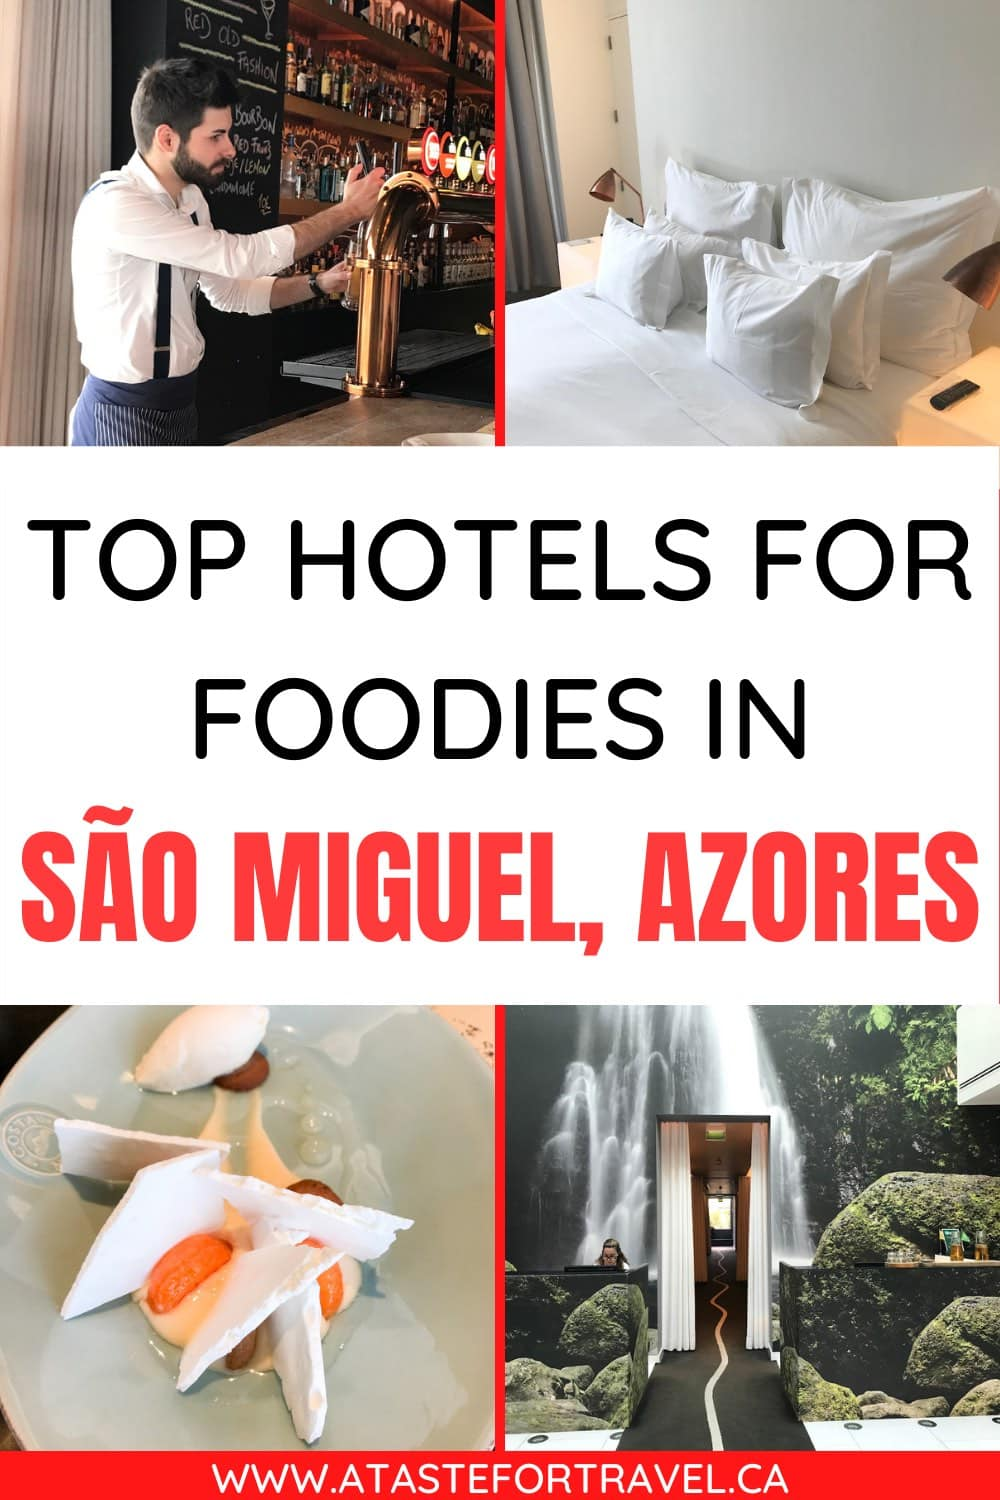 Collage of hotel and restaurant scenes with text overlay of top hotels in sao miguel for foodies. st